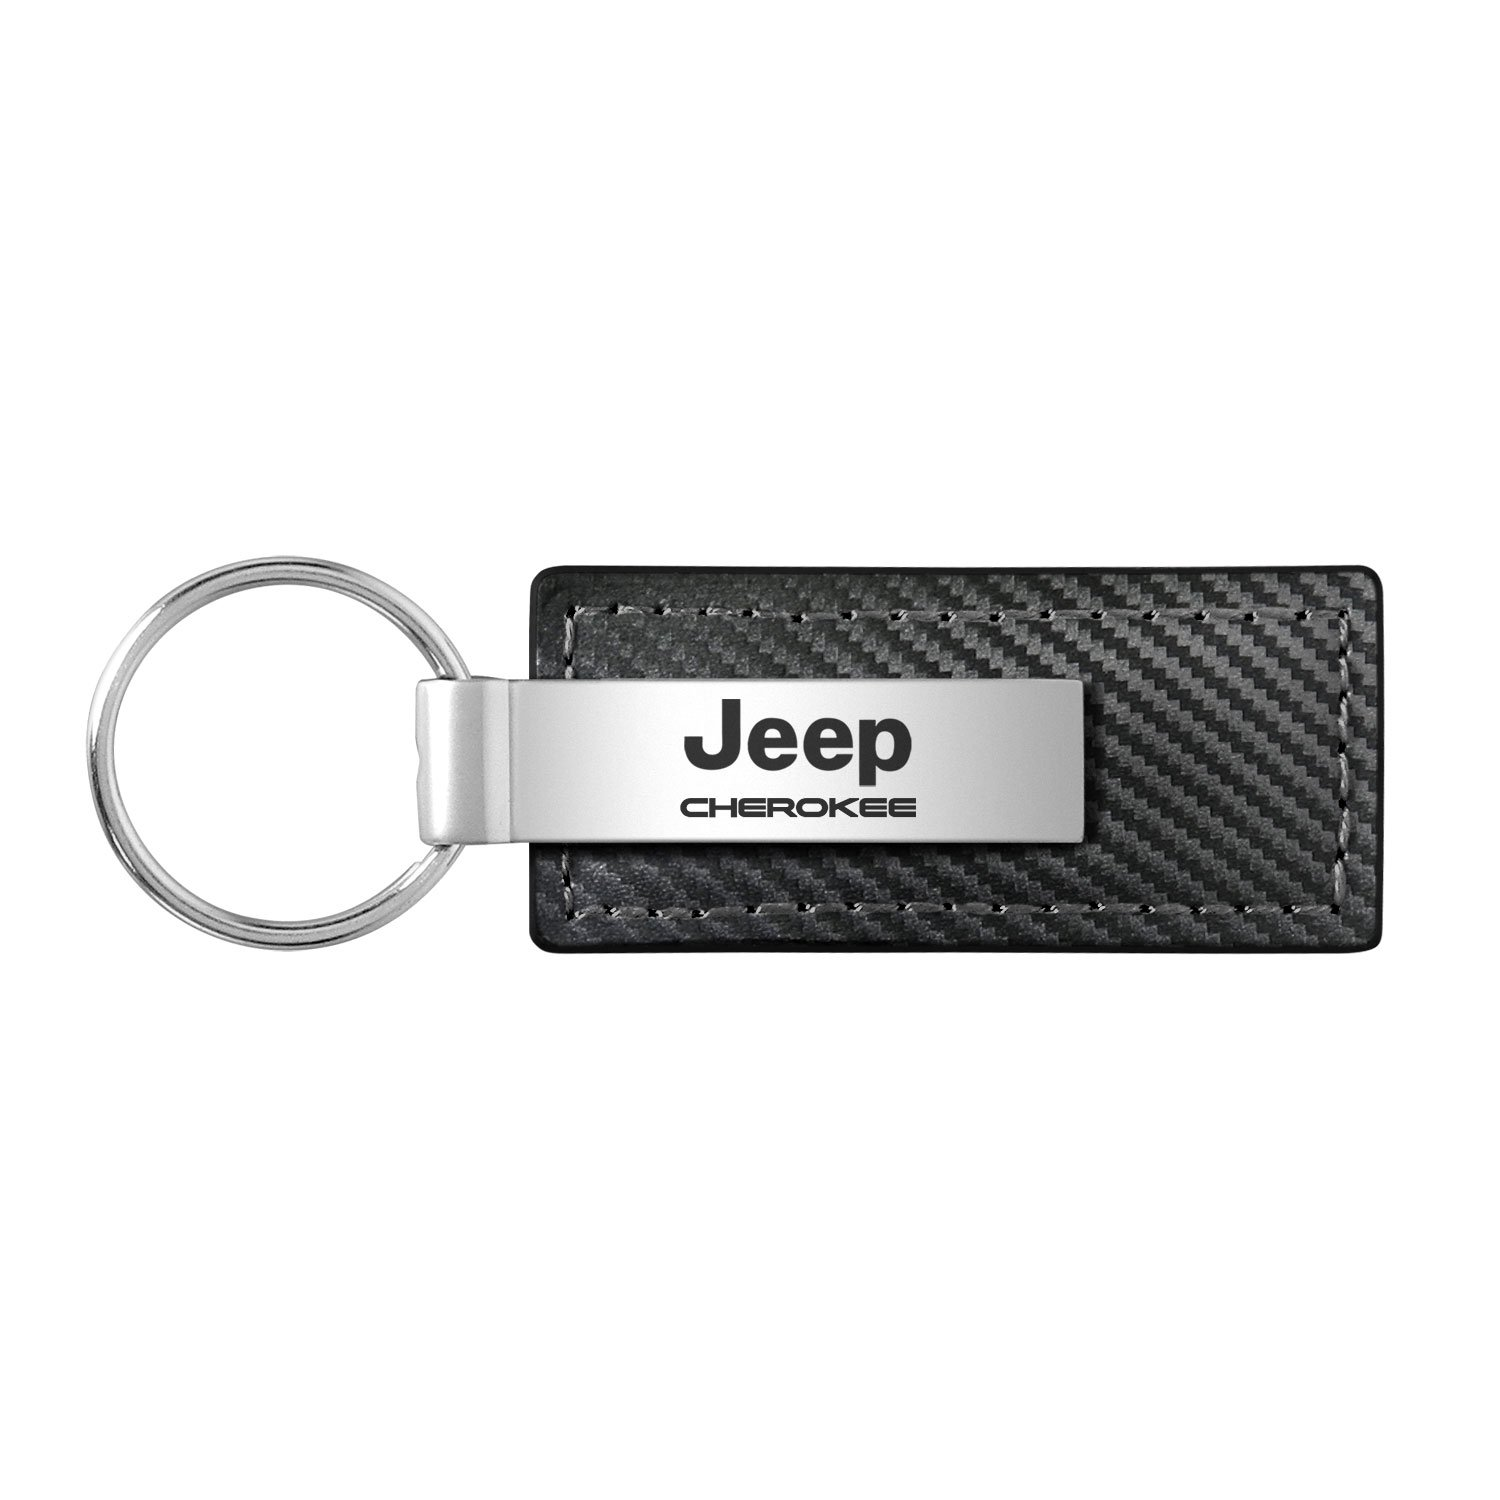 Jeep Cherokee Black Carbon Fiber Texture Leather Key Chain INC Au-Tomotive Gold